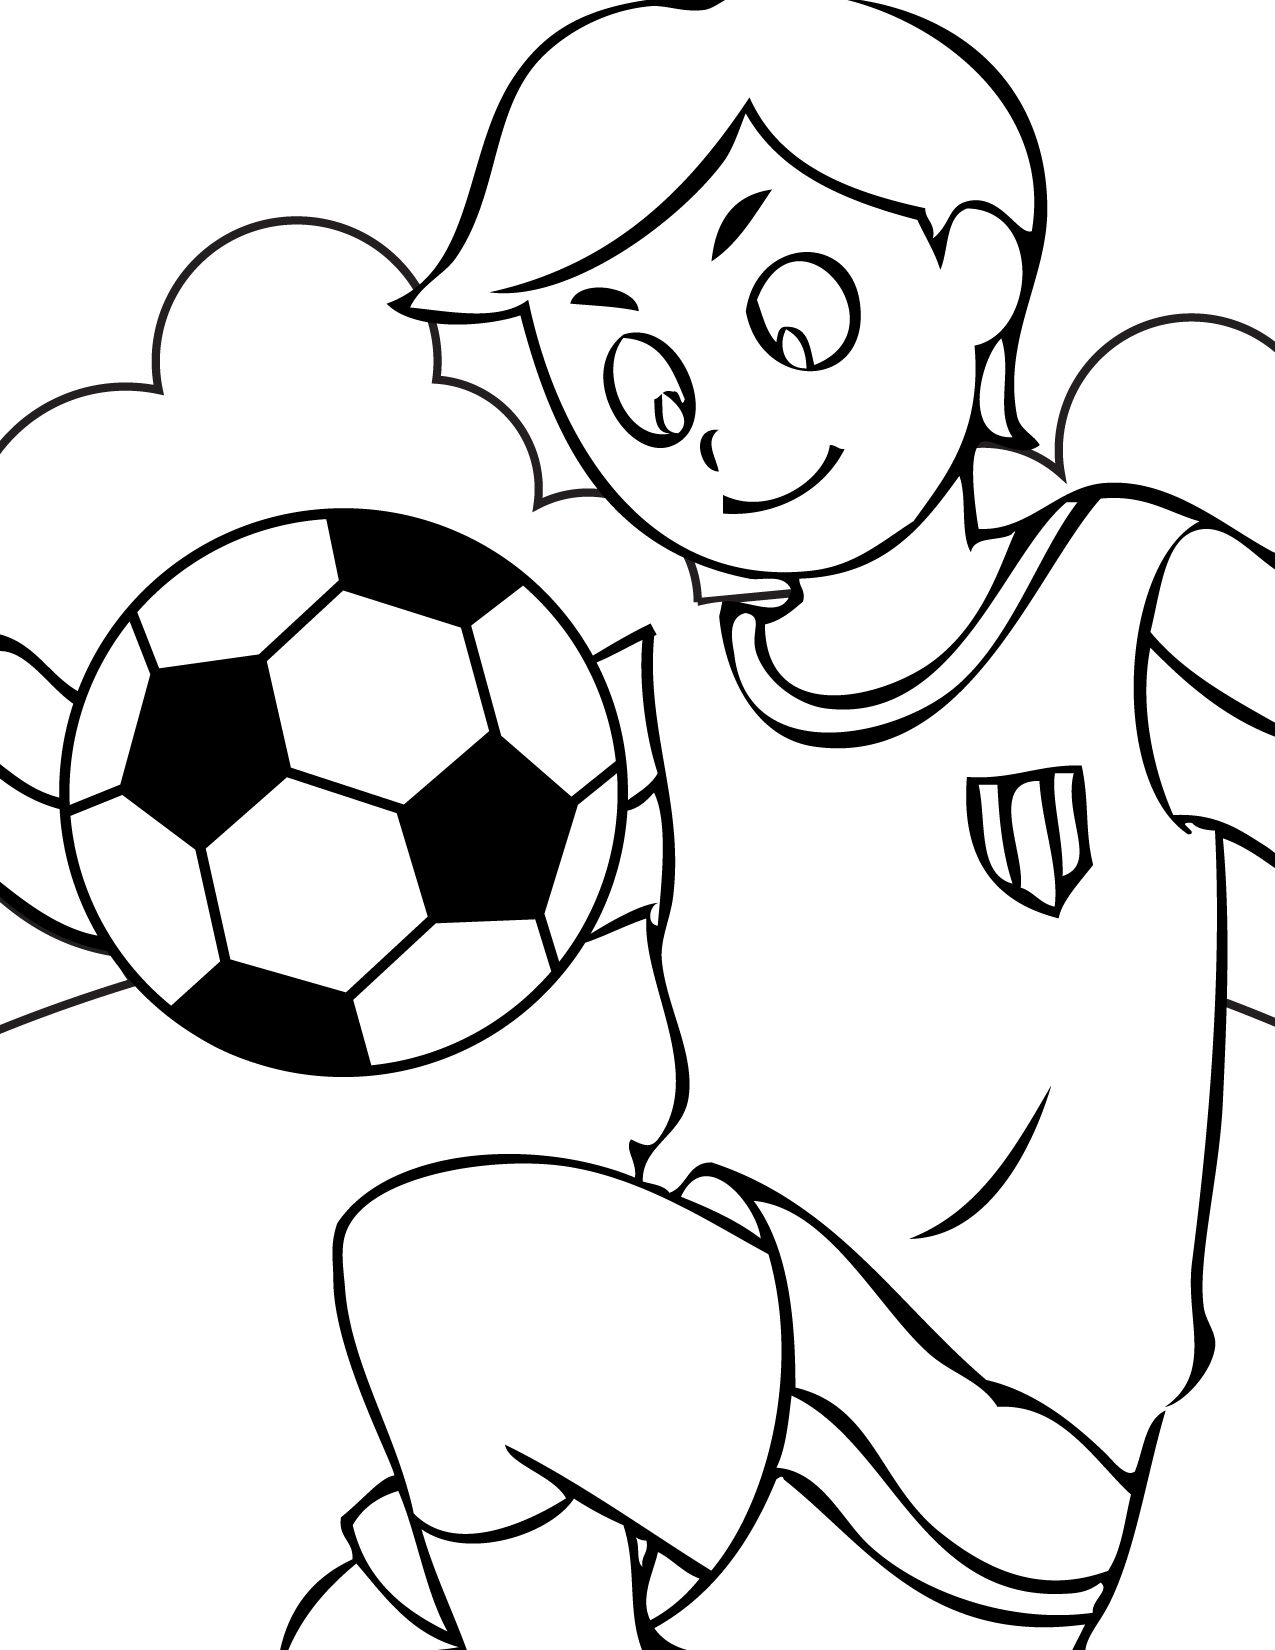 1275x1650 free printable sports coloring pages for kids sports sports